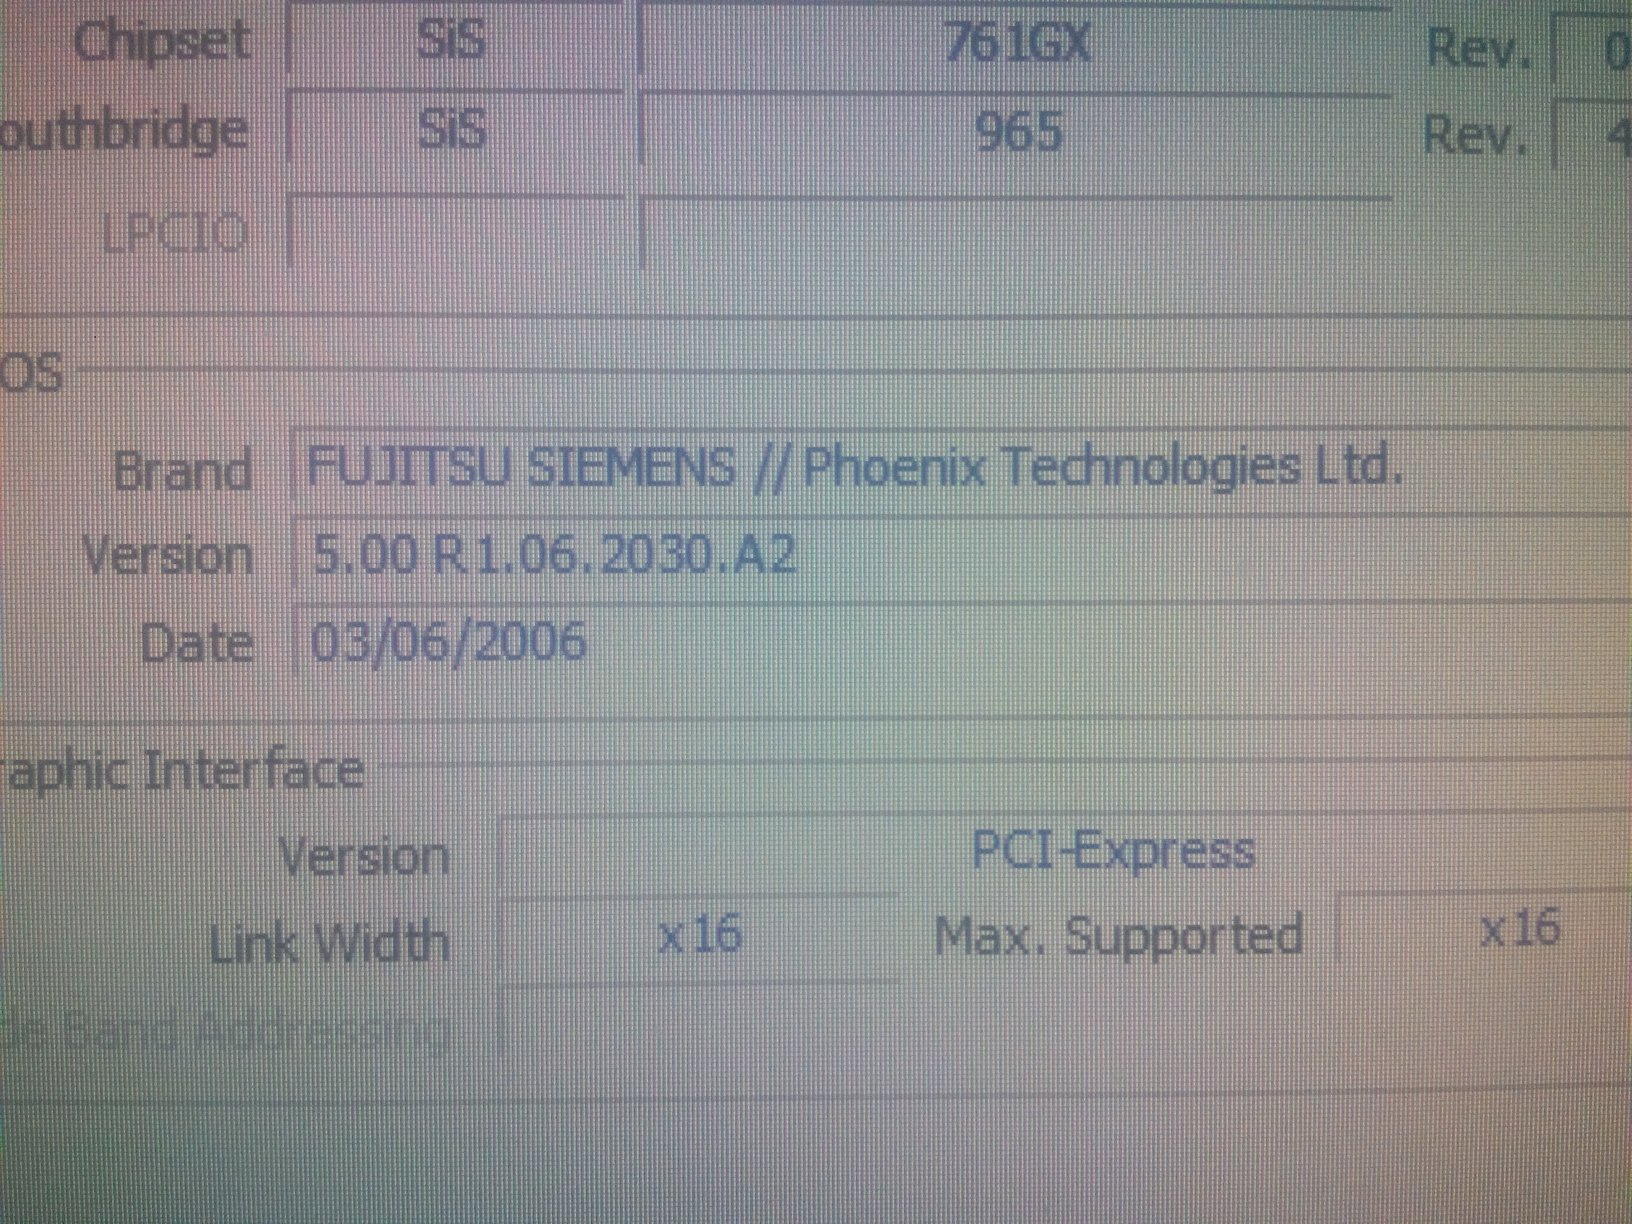 Anyone knows how to overclock in this BIOS?(my old pc died)